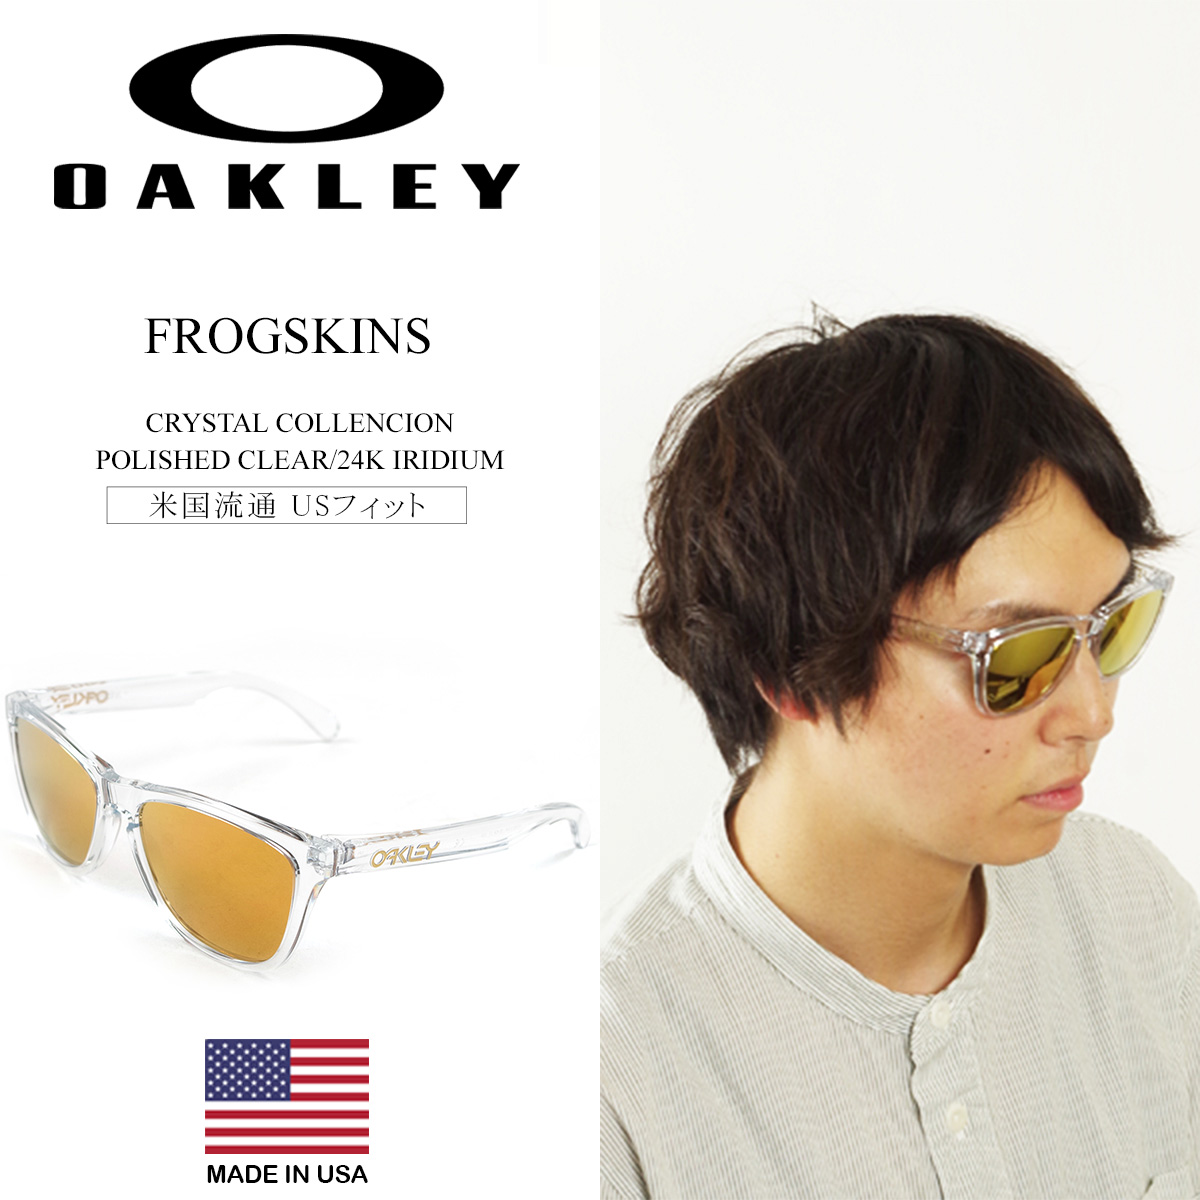 b4fc0bd929 Oakley OAKLEY sunglasses frog skin crystal collection polished CLIA   24 K  Iridium (US fit FROGSKINS Crystal Collencion)